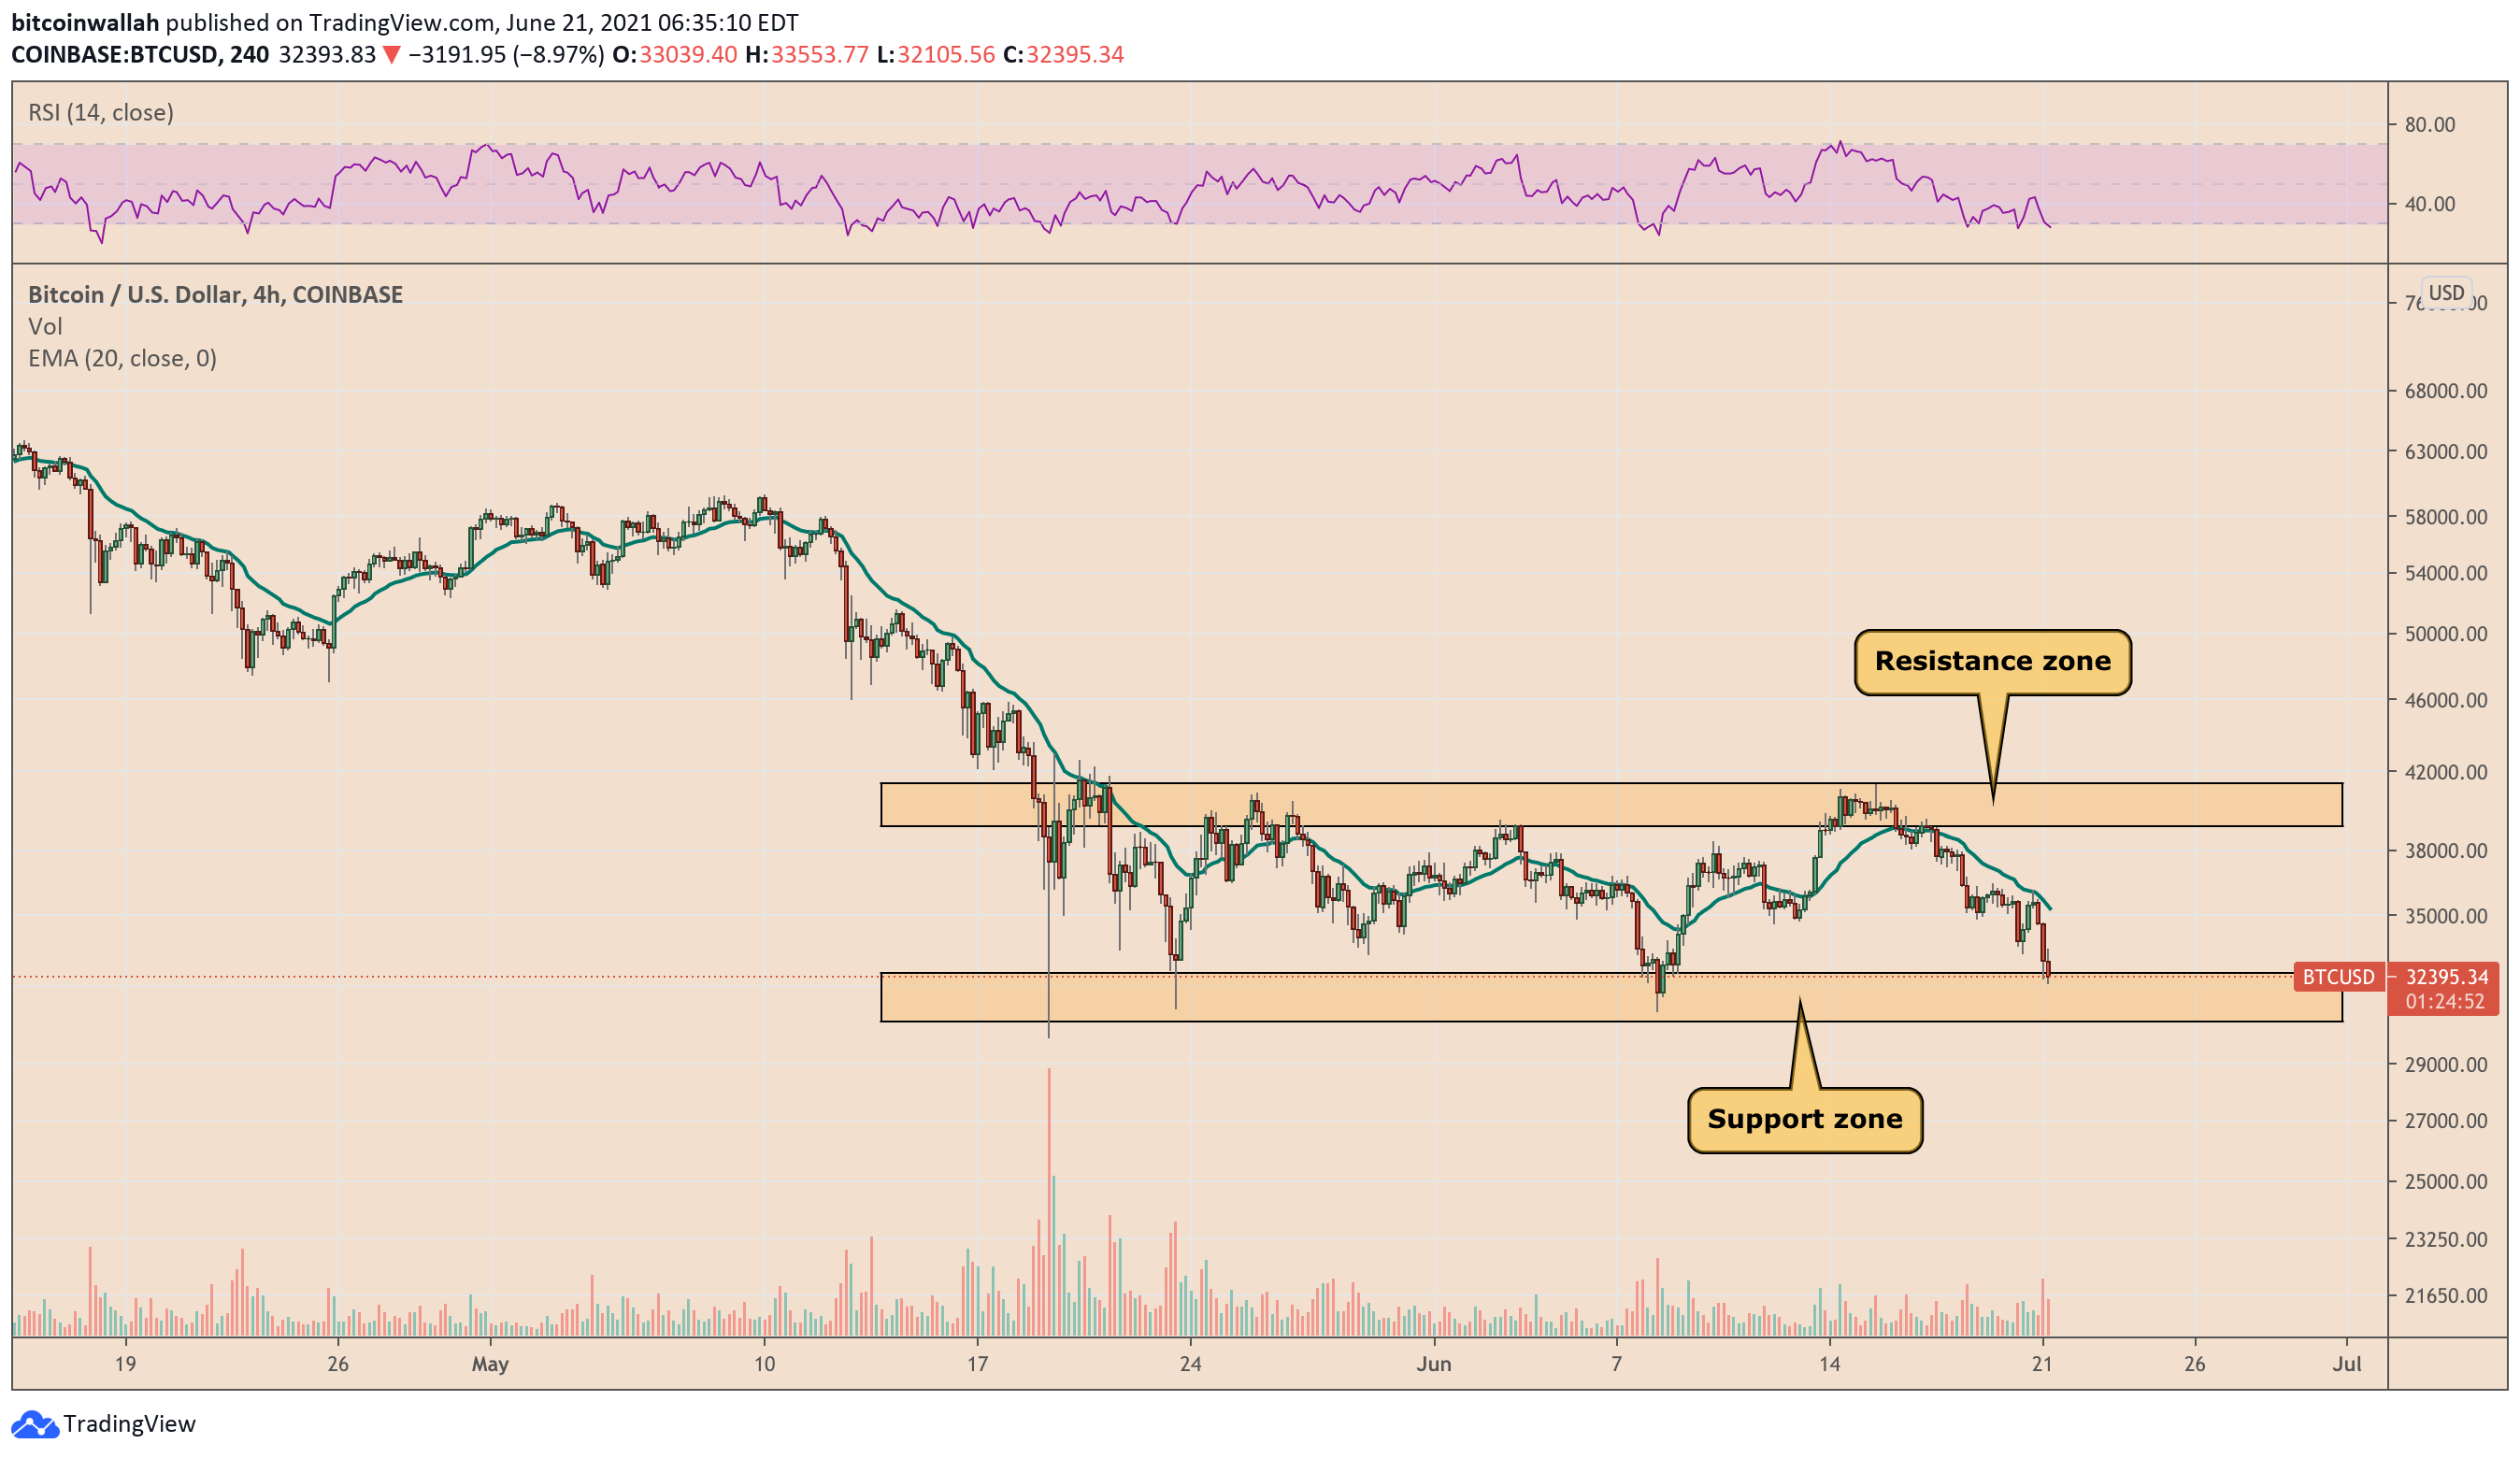 Classic bearish chart pattern forms for Bitcoin as BTC price tumbles to K